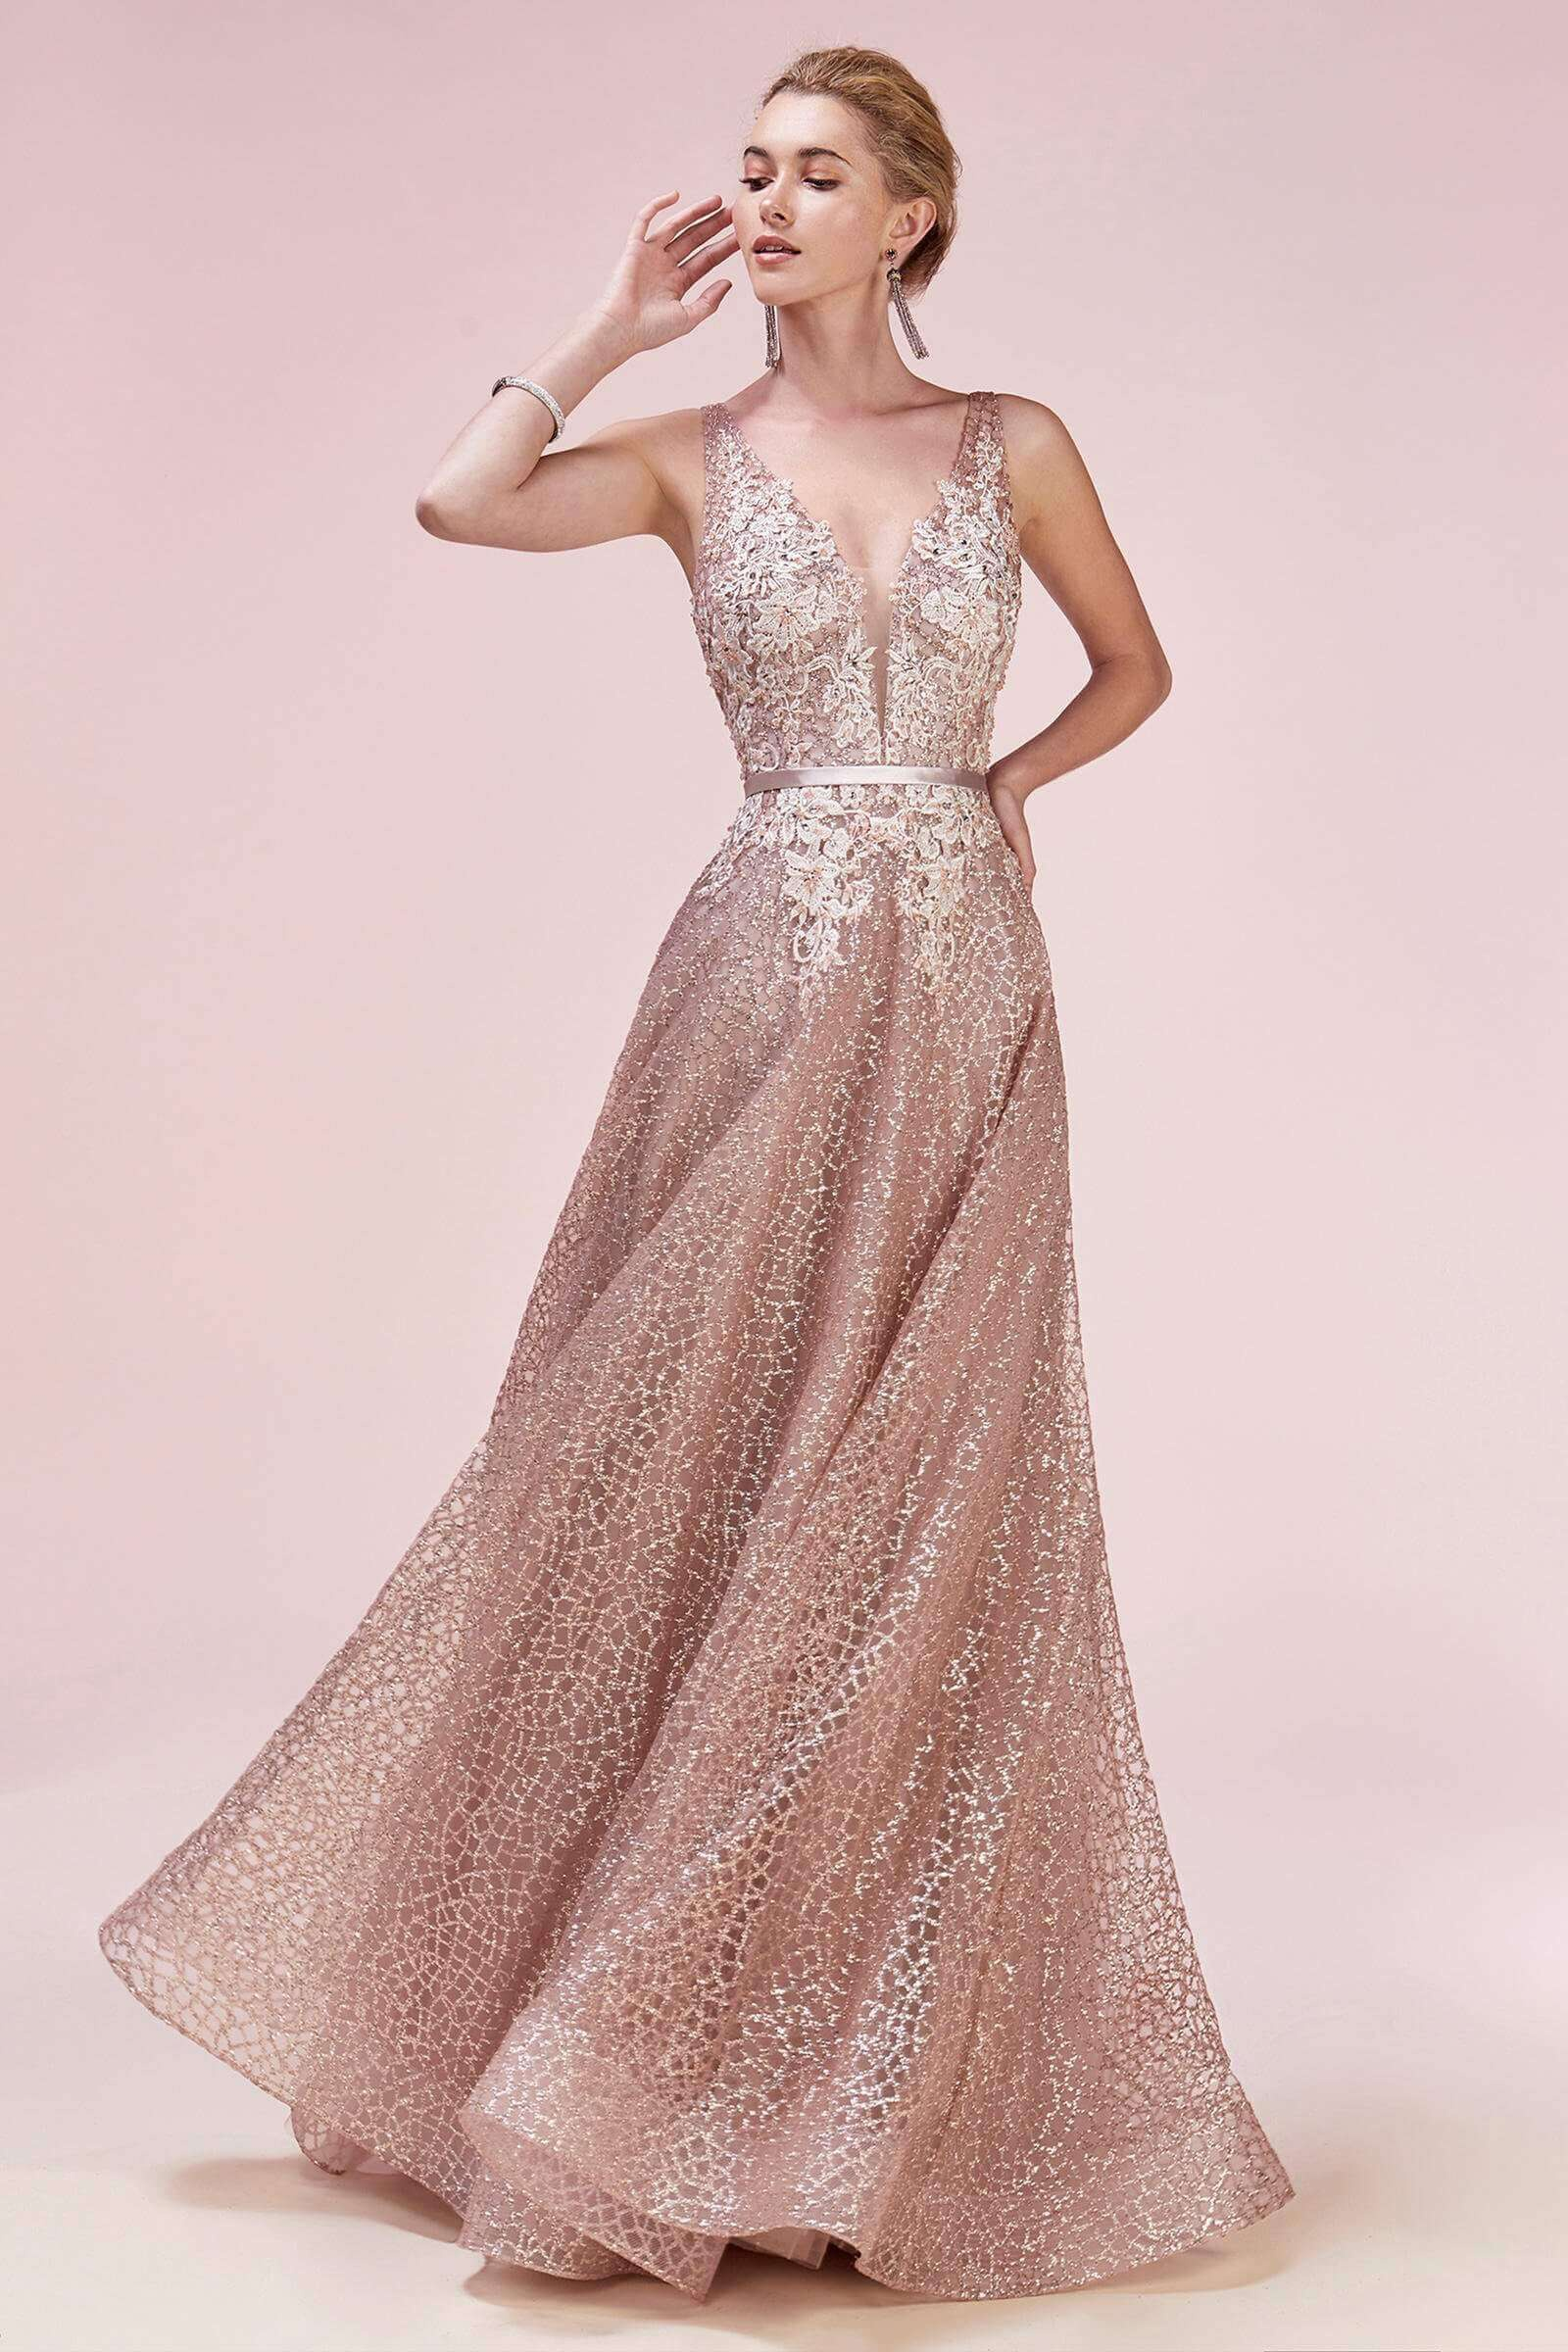 Style A0568 Andrea & Leo Pink Size 24 Andrea And Leo Backless Tall Height A-line Dress on Queenly